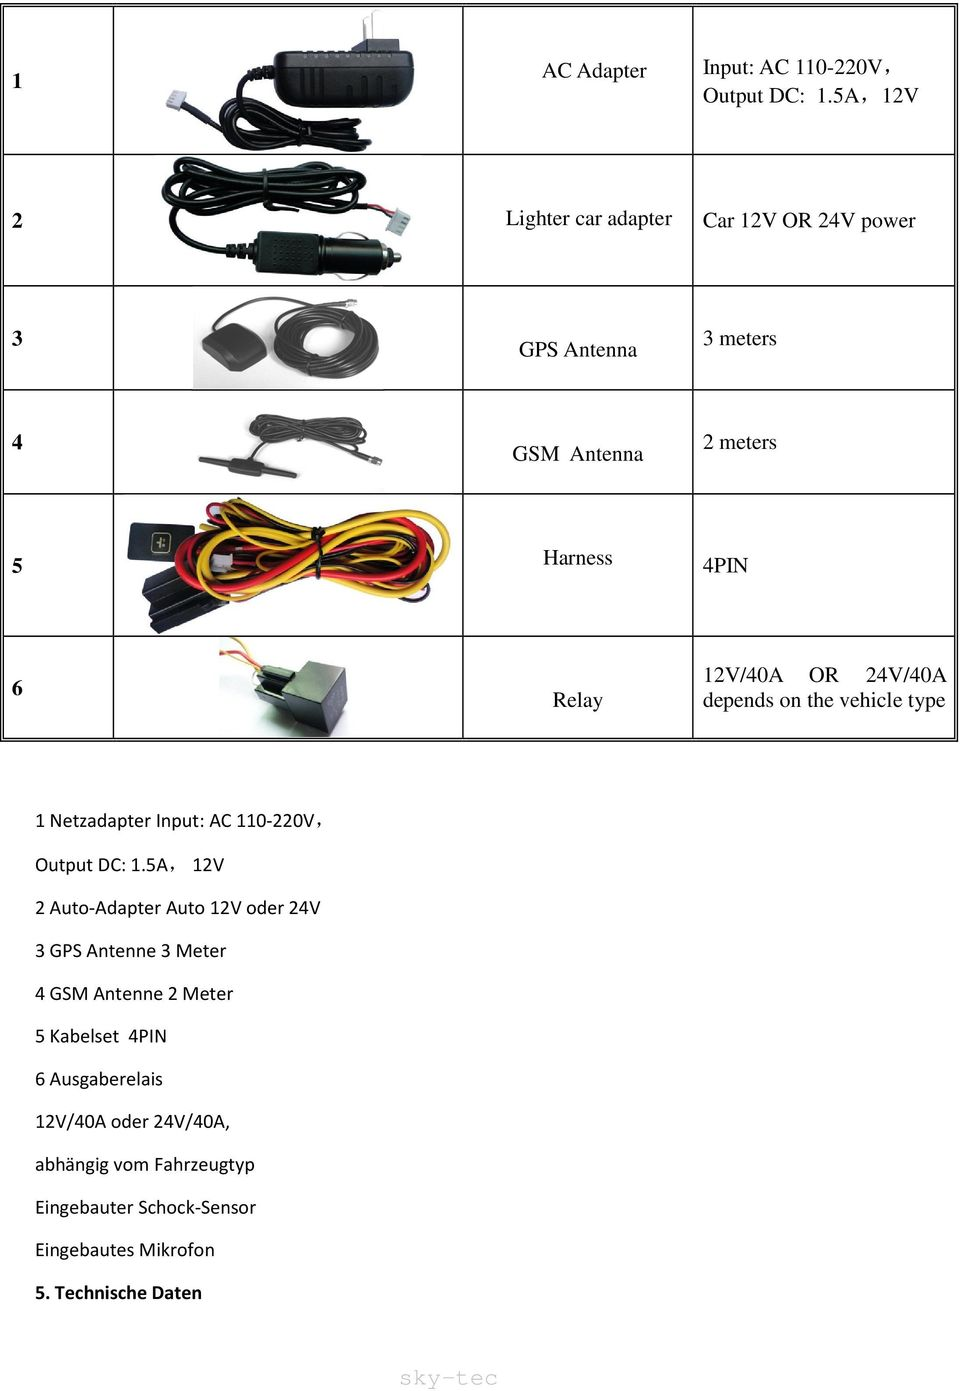 12V/40A OR 24V/40A depends on the vehicle type 1 Netzadapter Input: AC 110-220V, Output DC: 1.